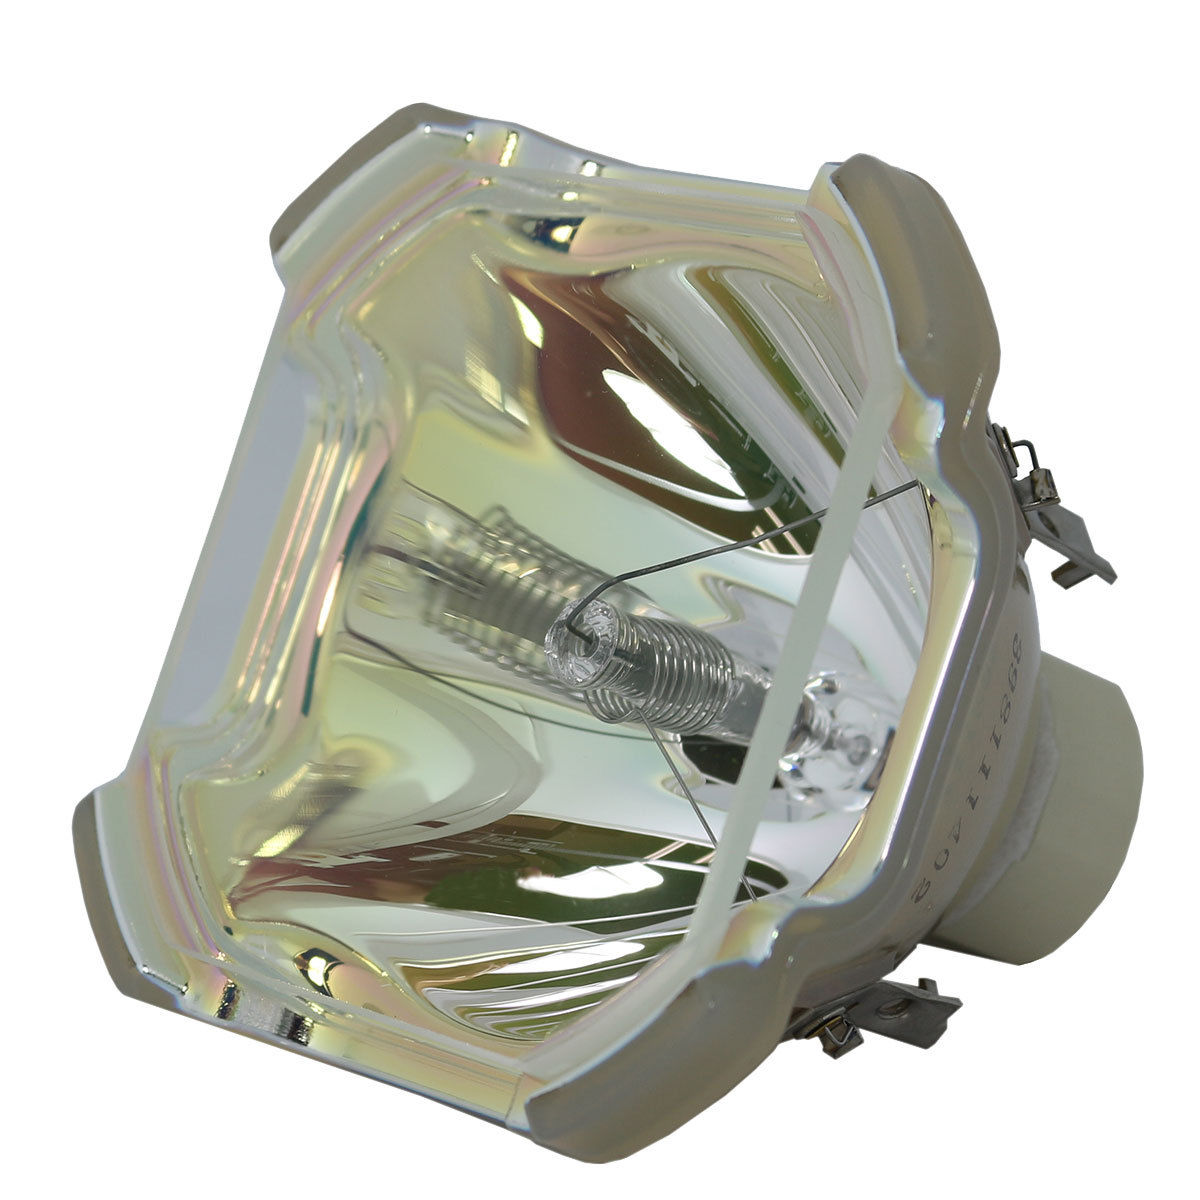 Compatible Bare Bulb POA-LMP128 LMP128 610-341-9497 for SANYO PLC-XF71 PLC-XF1000 Projector Lamp Bulb without housing poa lmp137 bare projector lamp for sanyo plc xm100 plc xm100l plc xm150 plc xm150l